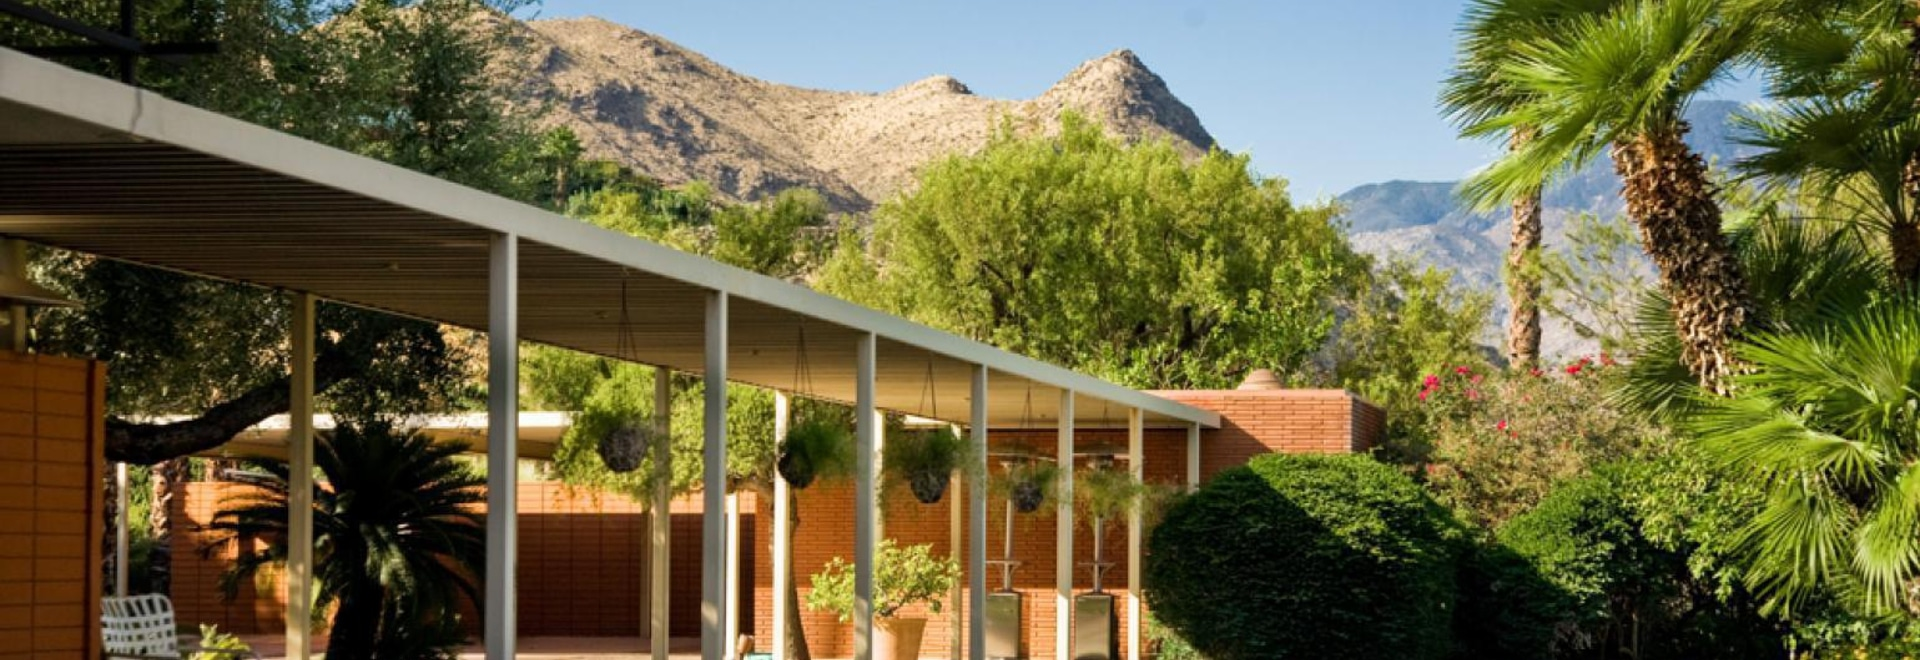 Hugh Kaptur (b. 1931) is one of Palm Springs' most prolific architects and part of a group of modernists who defined Desert Modernism. Pictured here, his house for Hollywood actor Steve McQueen. Ph...